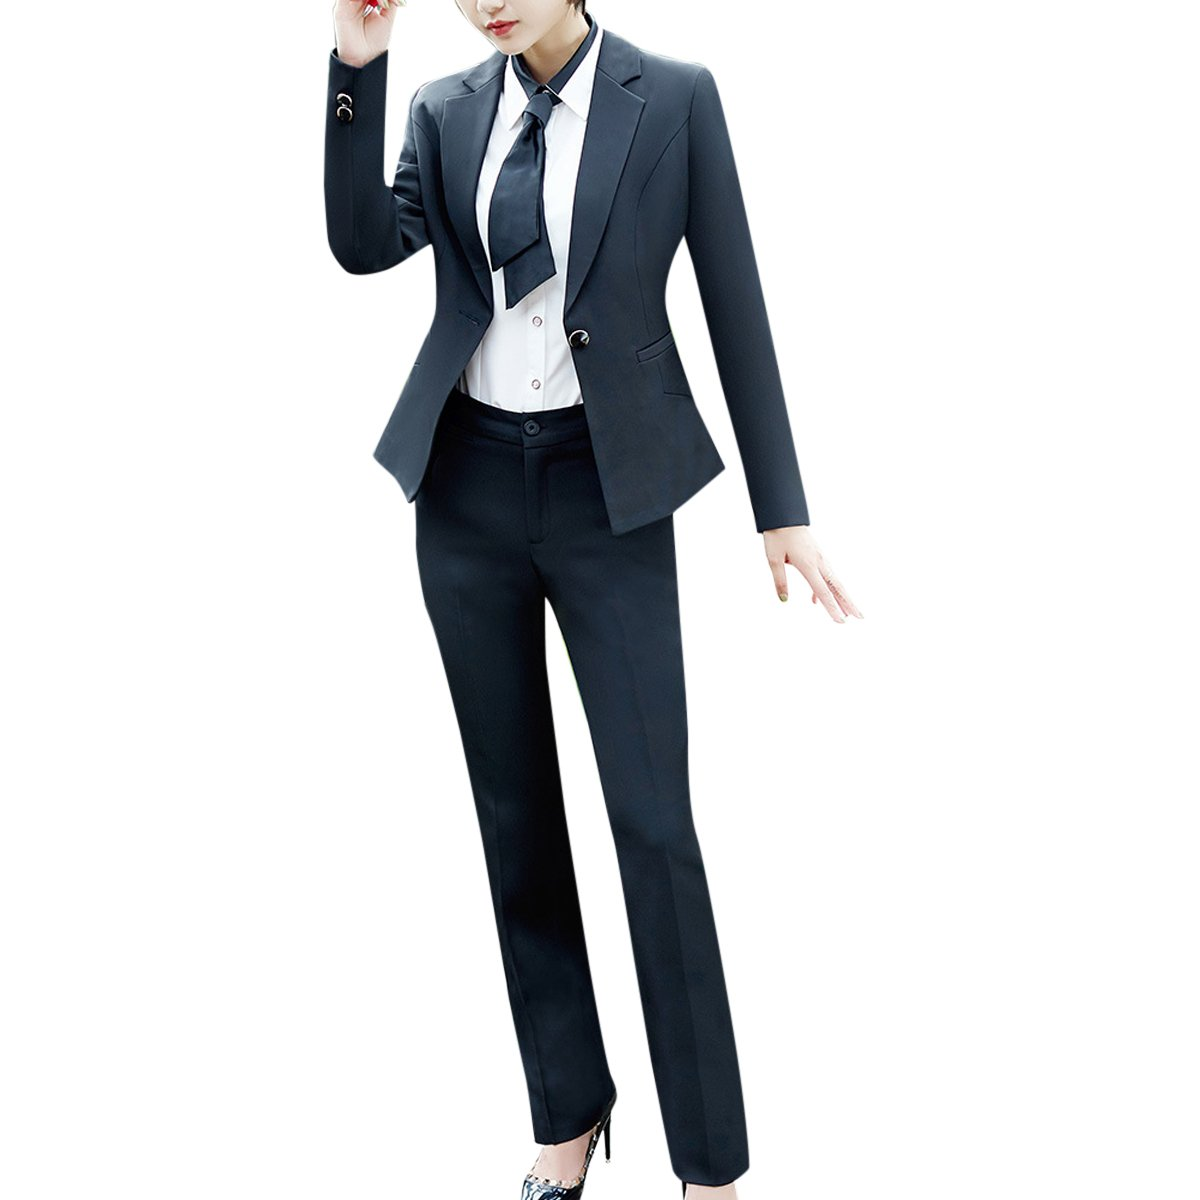 YUNCLOS Women's 4 Piece Business Office Lady Suit Set For Work Formal Blazer Vest Pant and Skirt